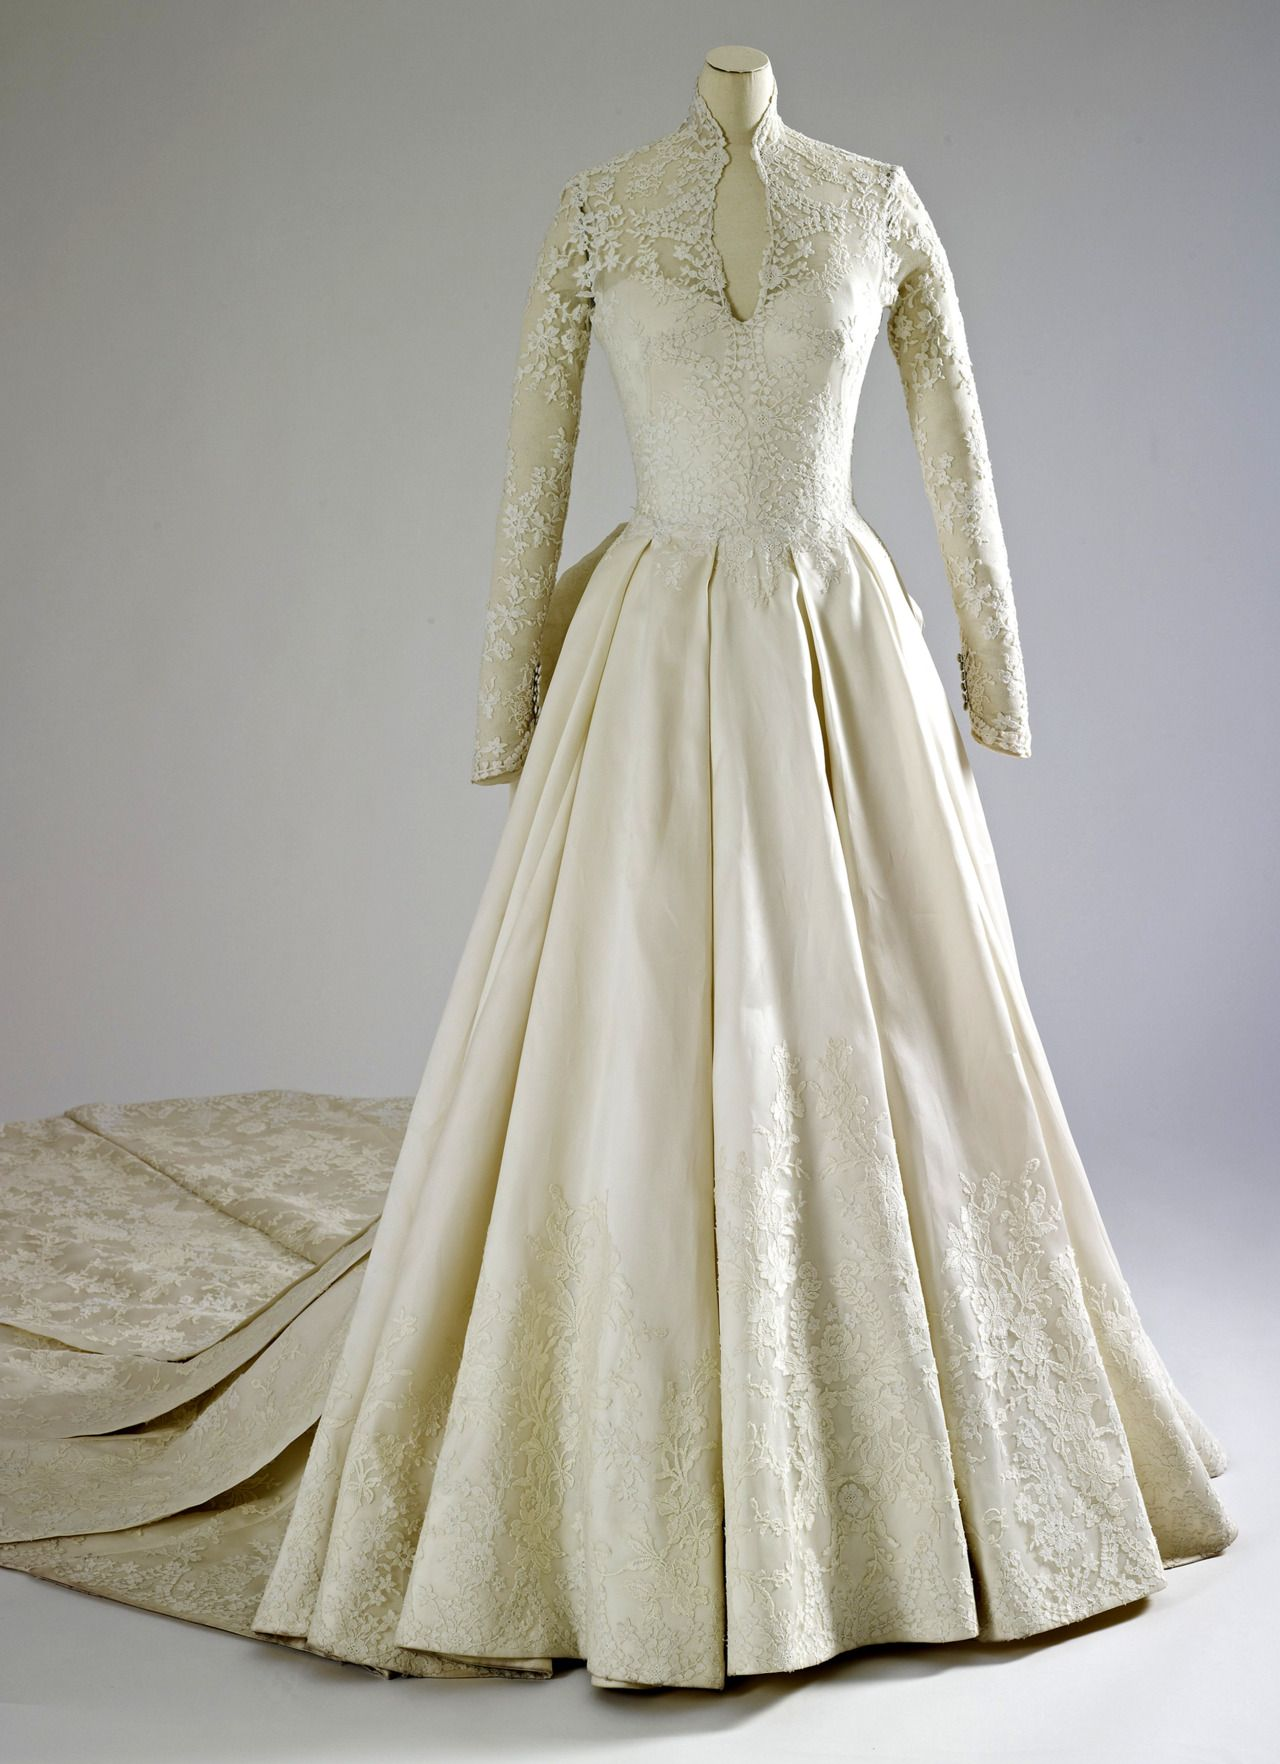 Ten Things I Learned At The Royal Wedding Dress Exhibition Victorian Wedding Dress Kate Middleton Wedding Dress Royal Wedding Dress [ 1764 x 1280 Pixel ]